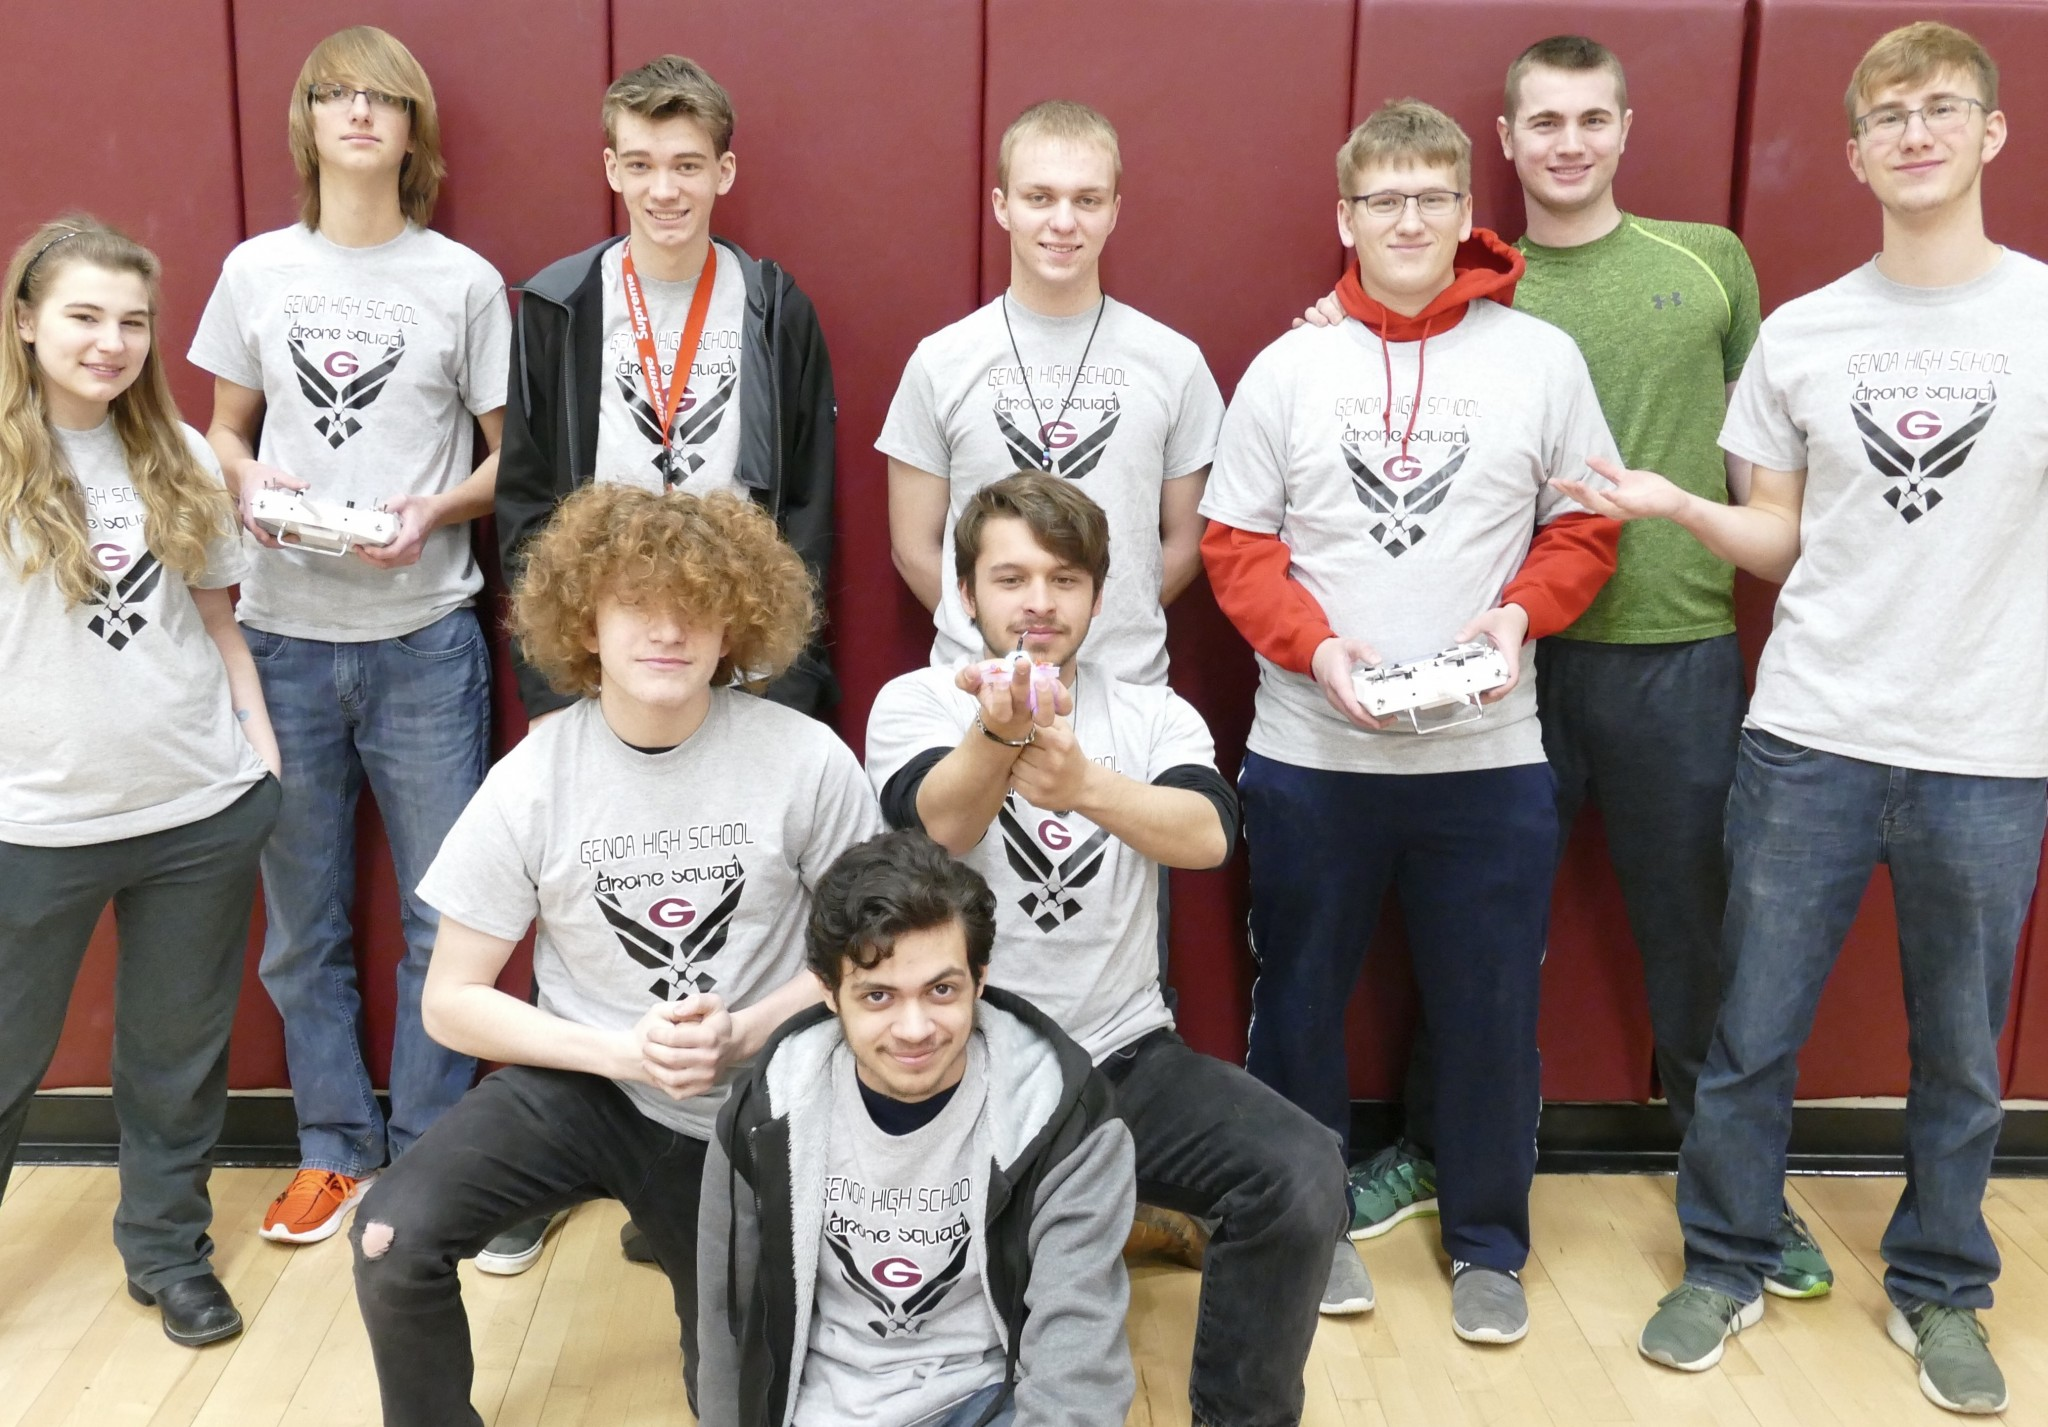 The Genoa Drone Team includes (front) Damyon Cruz; (center) Blaine Maluchnik and Nathan Uribes and (top) Savannah Wick, Nolan Weaver, Matt Robinson, Adam Vargo, Jacob Hart, Brandon Trumbull and Nick Weaver. (Submitted photo)